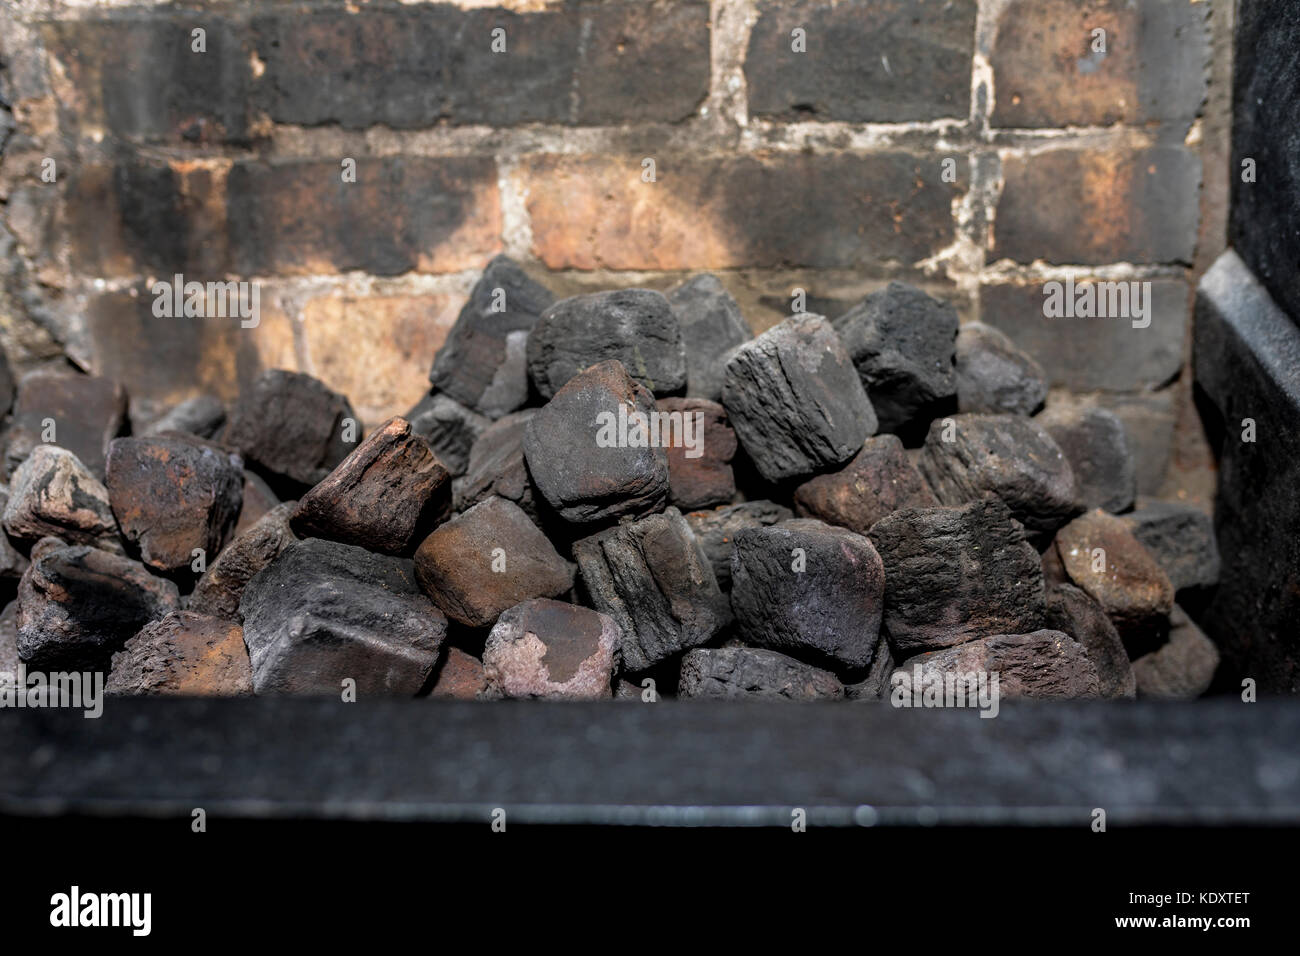 Coal in an unlit kitchen fireplace with no fire - Stock Image